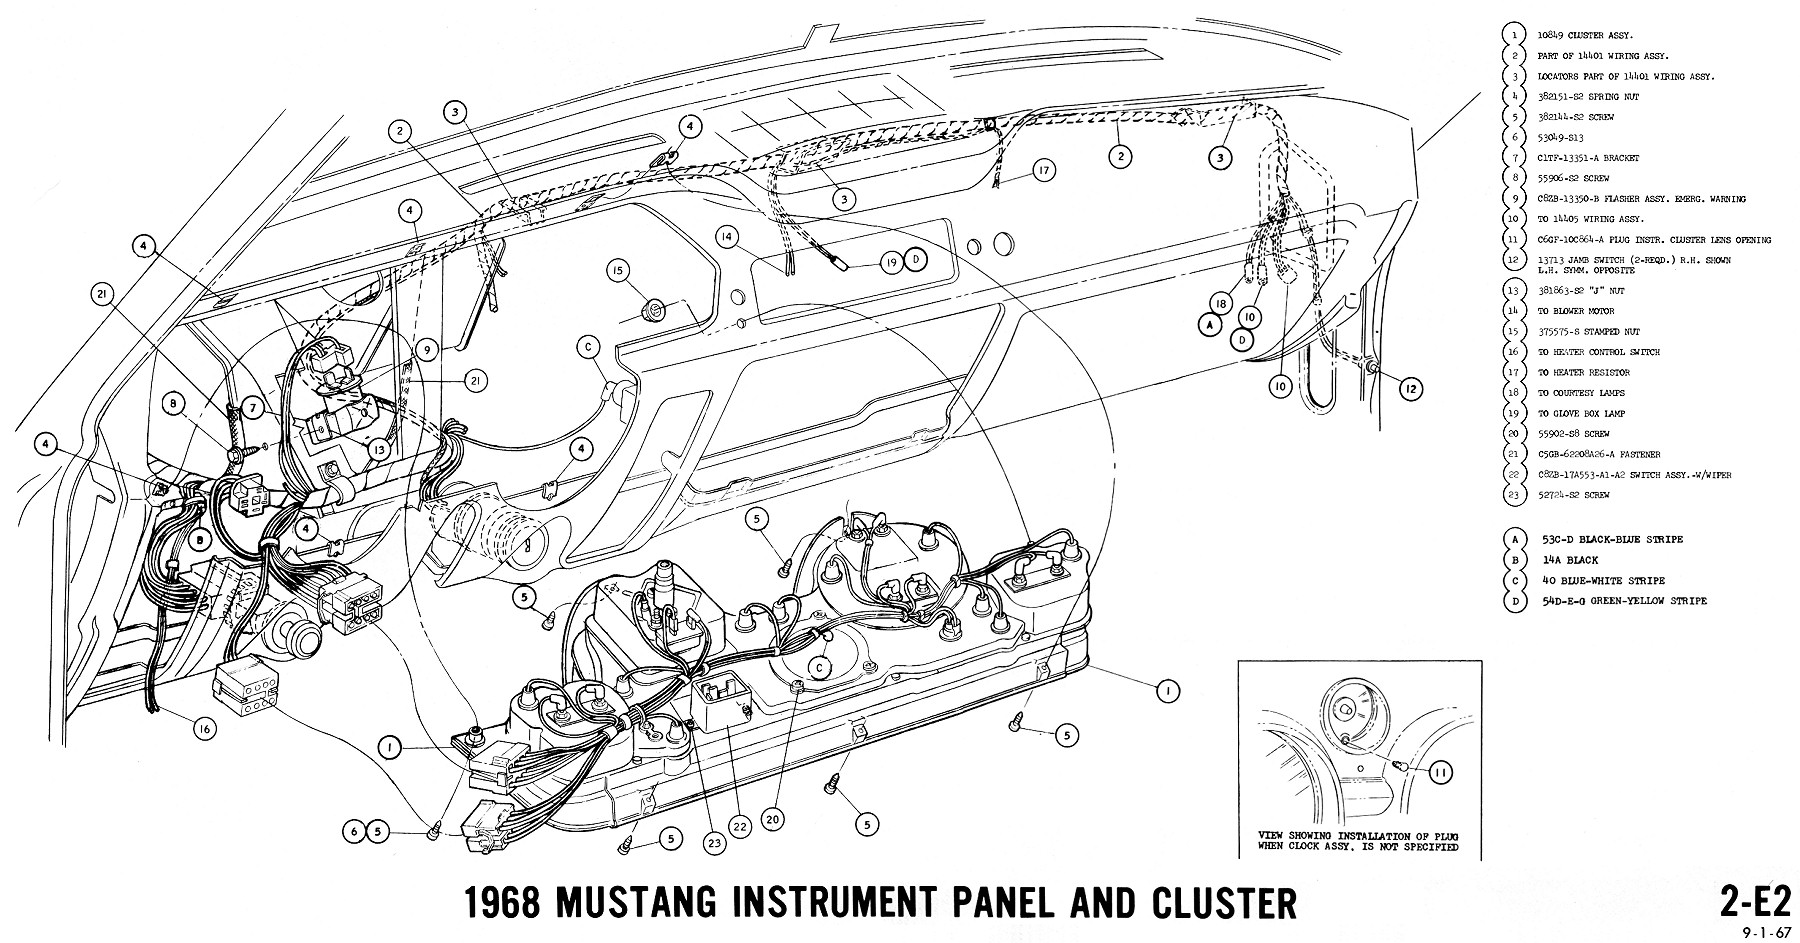 1968 mustang wiring diagram instruments 2 1969 mustang dash wiring diagram 1969 mustang wiring routing 2005 ford mustang instrument cluster wiring diagram at crackthecode.co